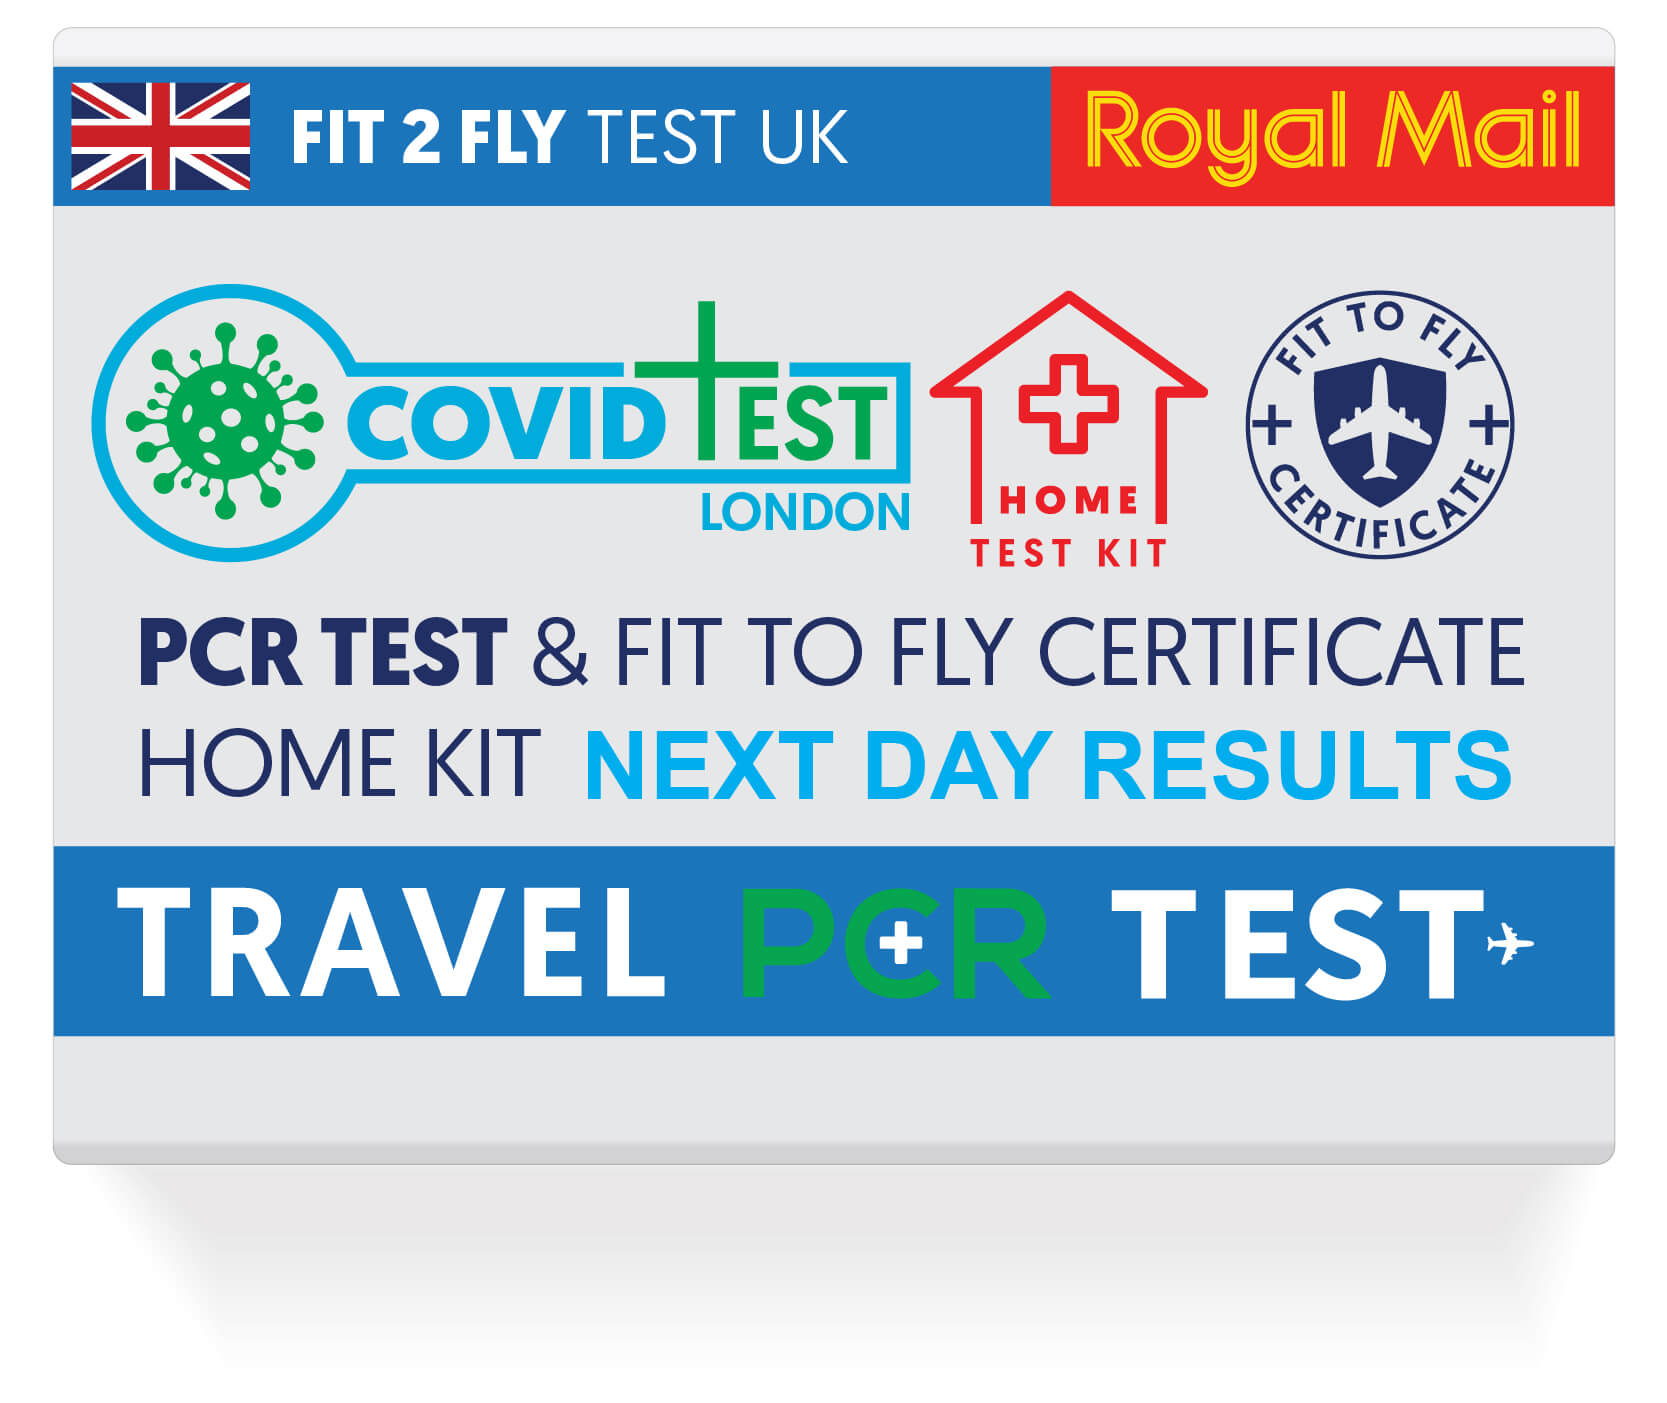 covid-test-london-_fit-to-fly-home-kit